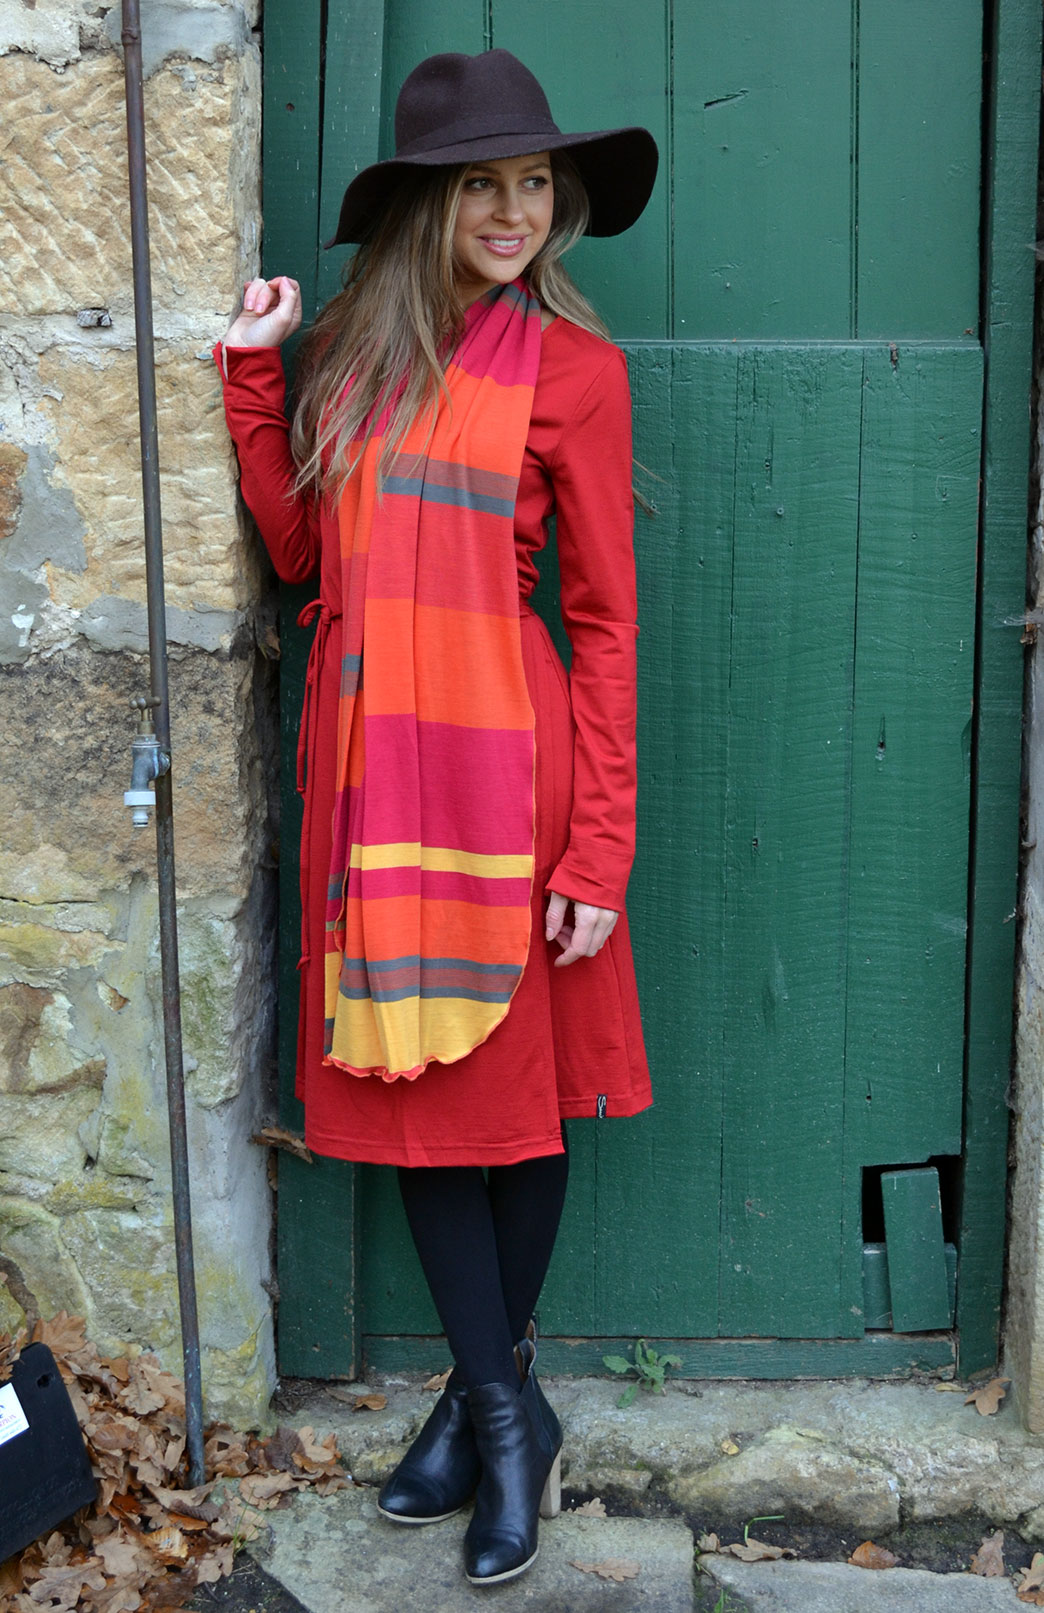 Wrap Dress - Long Sleeved - Women's Flame Red Merino Wool Long Sleeved Wrap Dress with adjustable ties - Smitten Merino Tasmania Australia